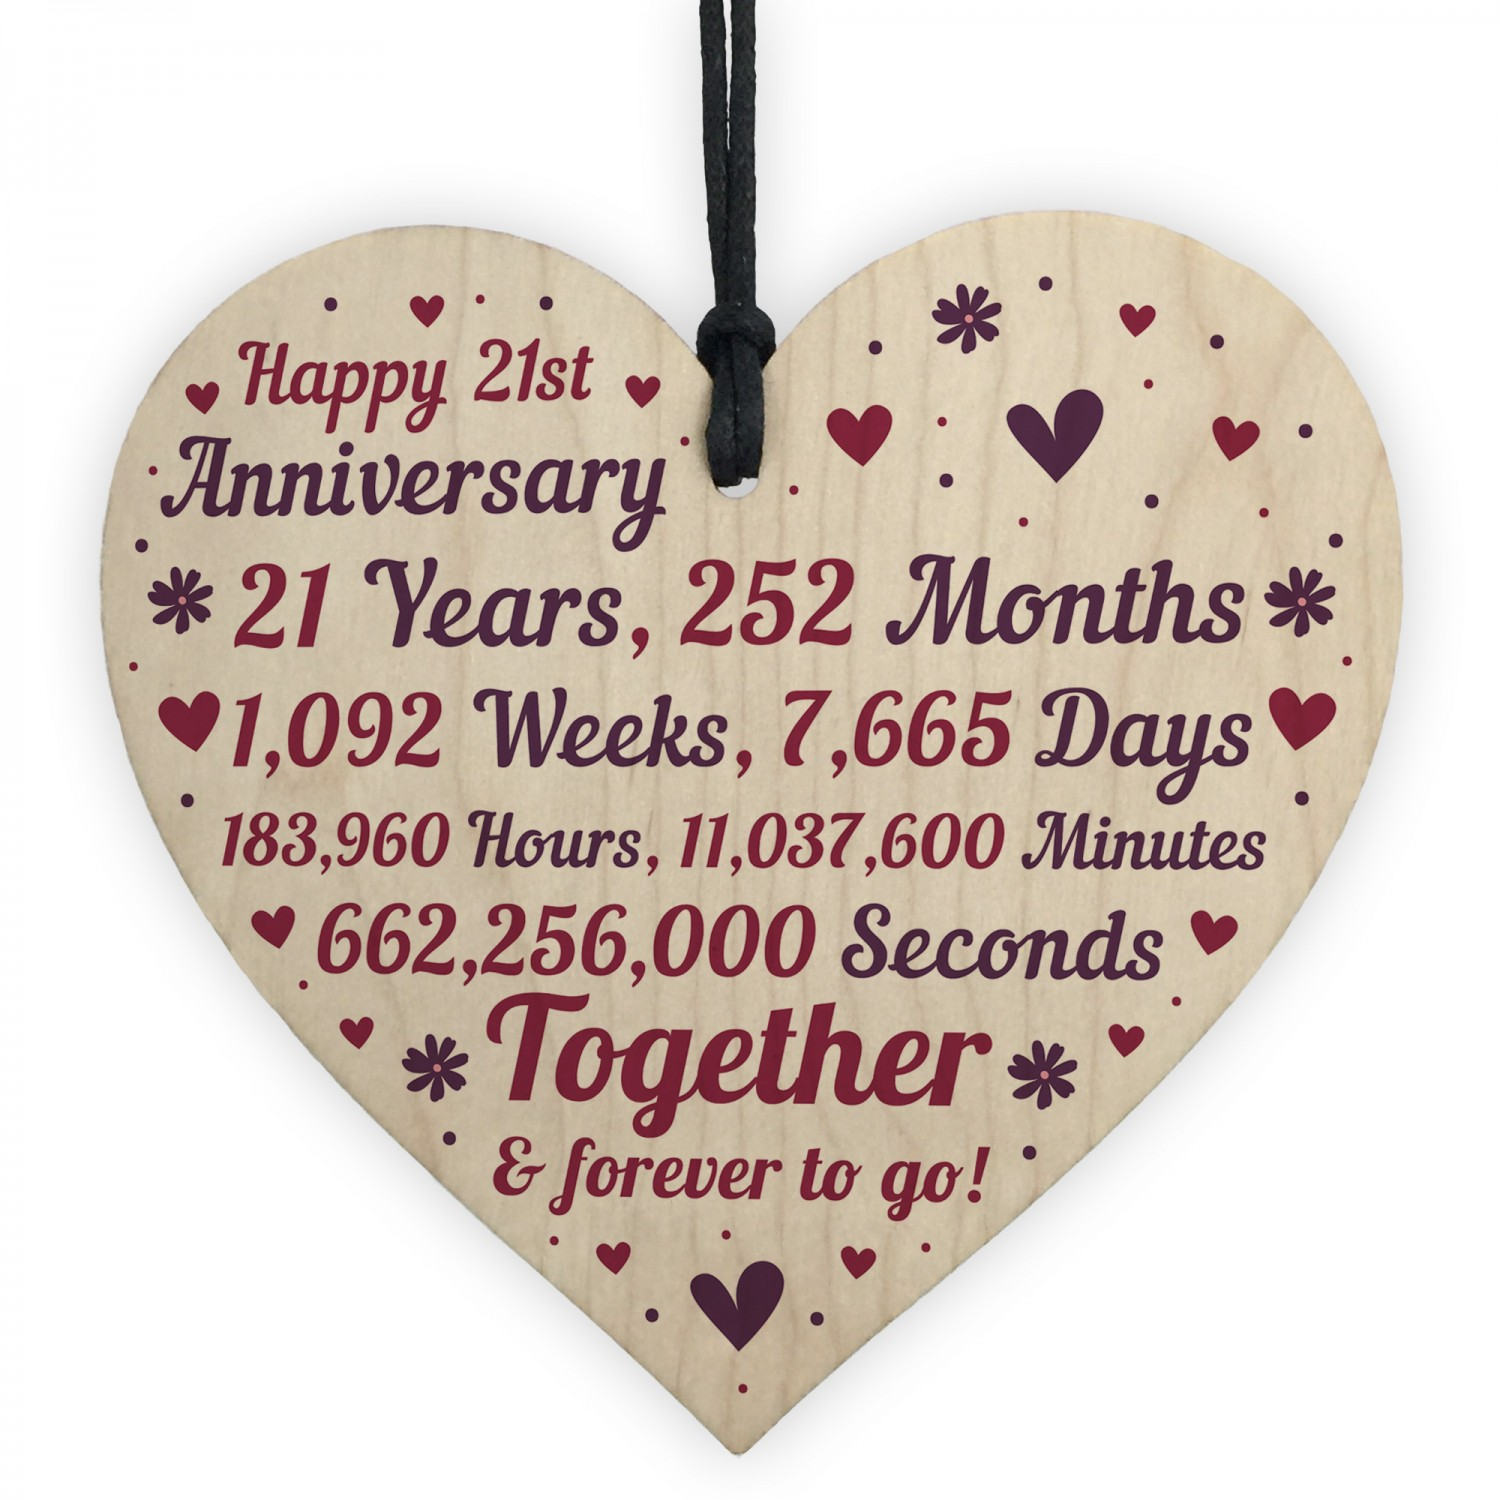 21st Wedding Anniversary.Anniversary Wooden Heart To Celebrate 21st Wedding Anniversary